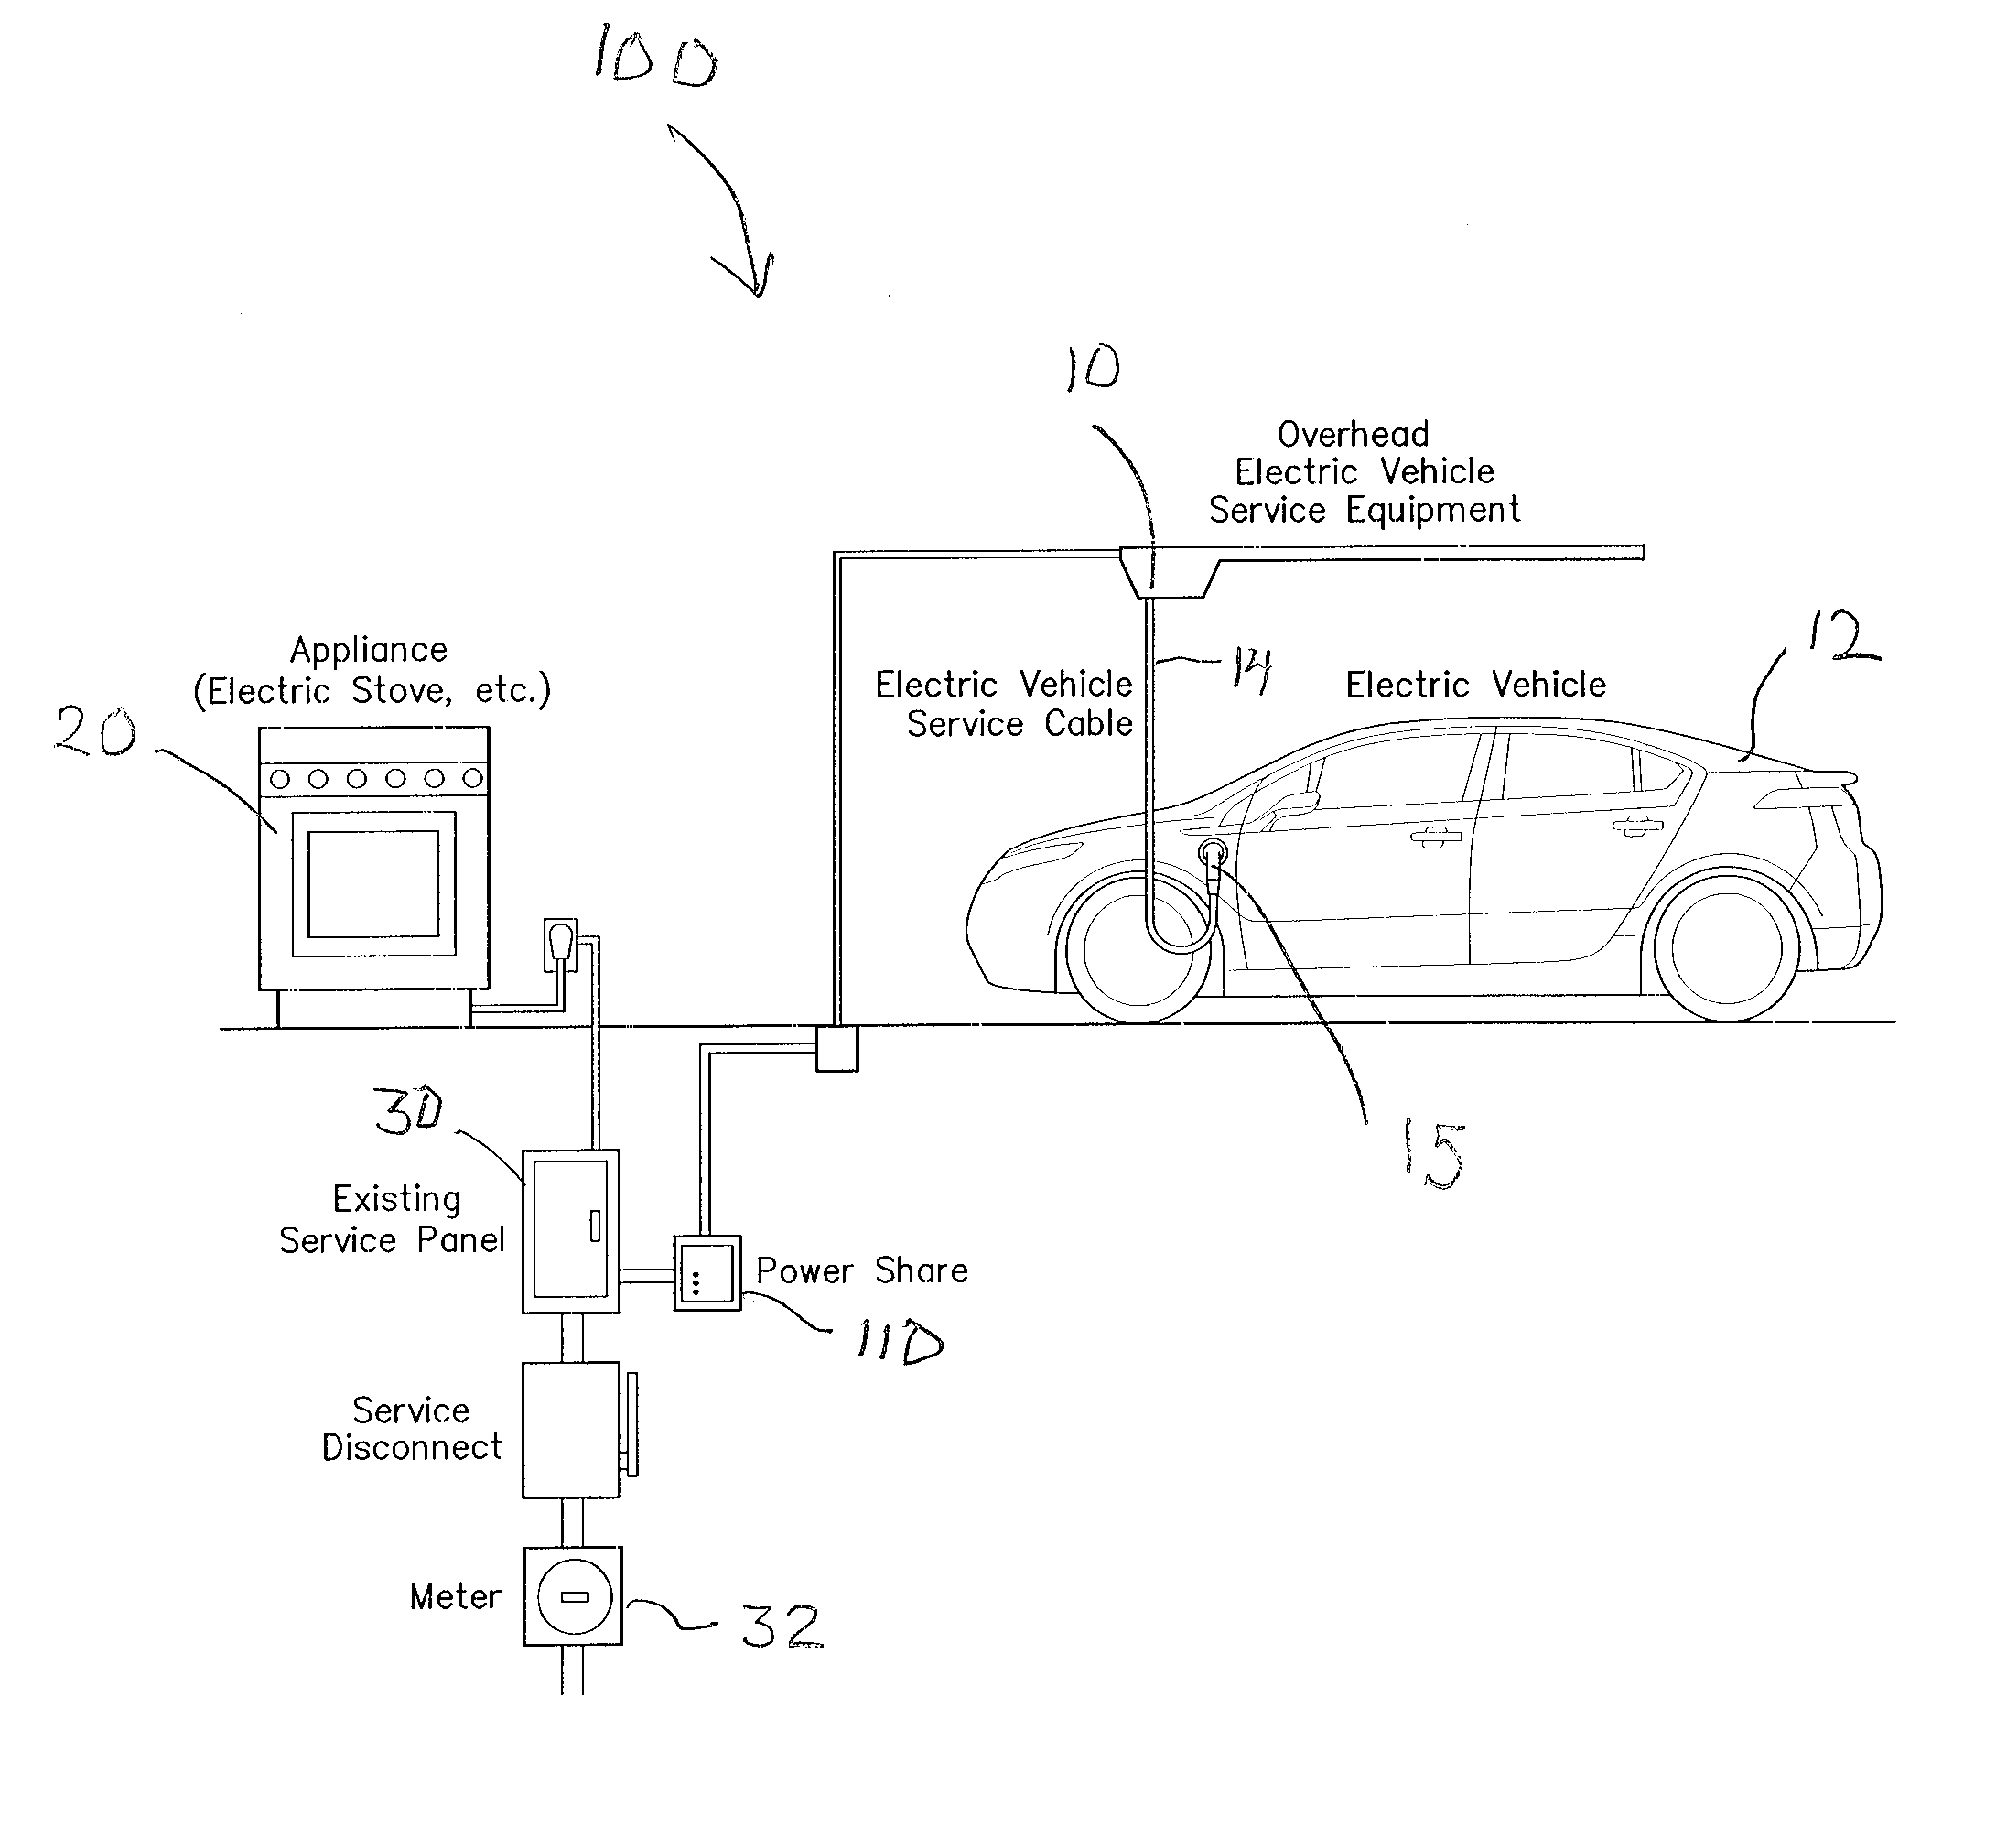 US20120032636A1 20120209 D00000 patent us20120032636 power share system for electric vehicle  at nearapp.co